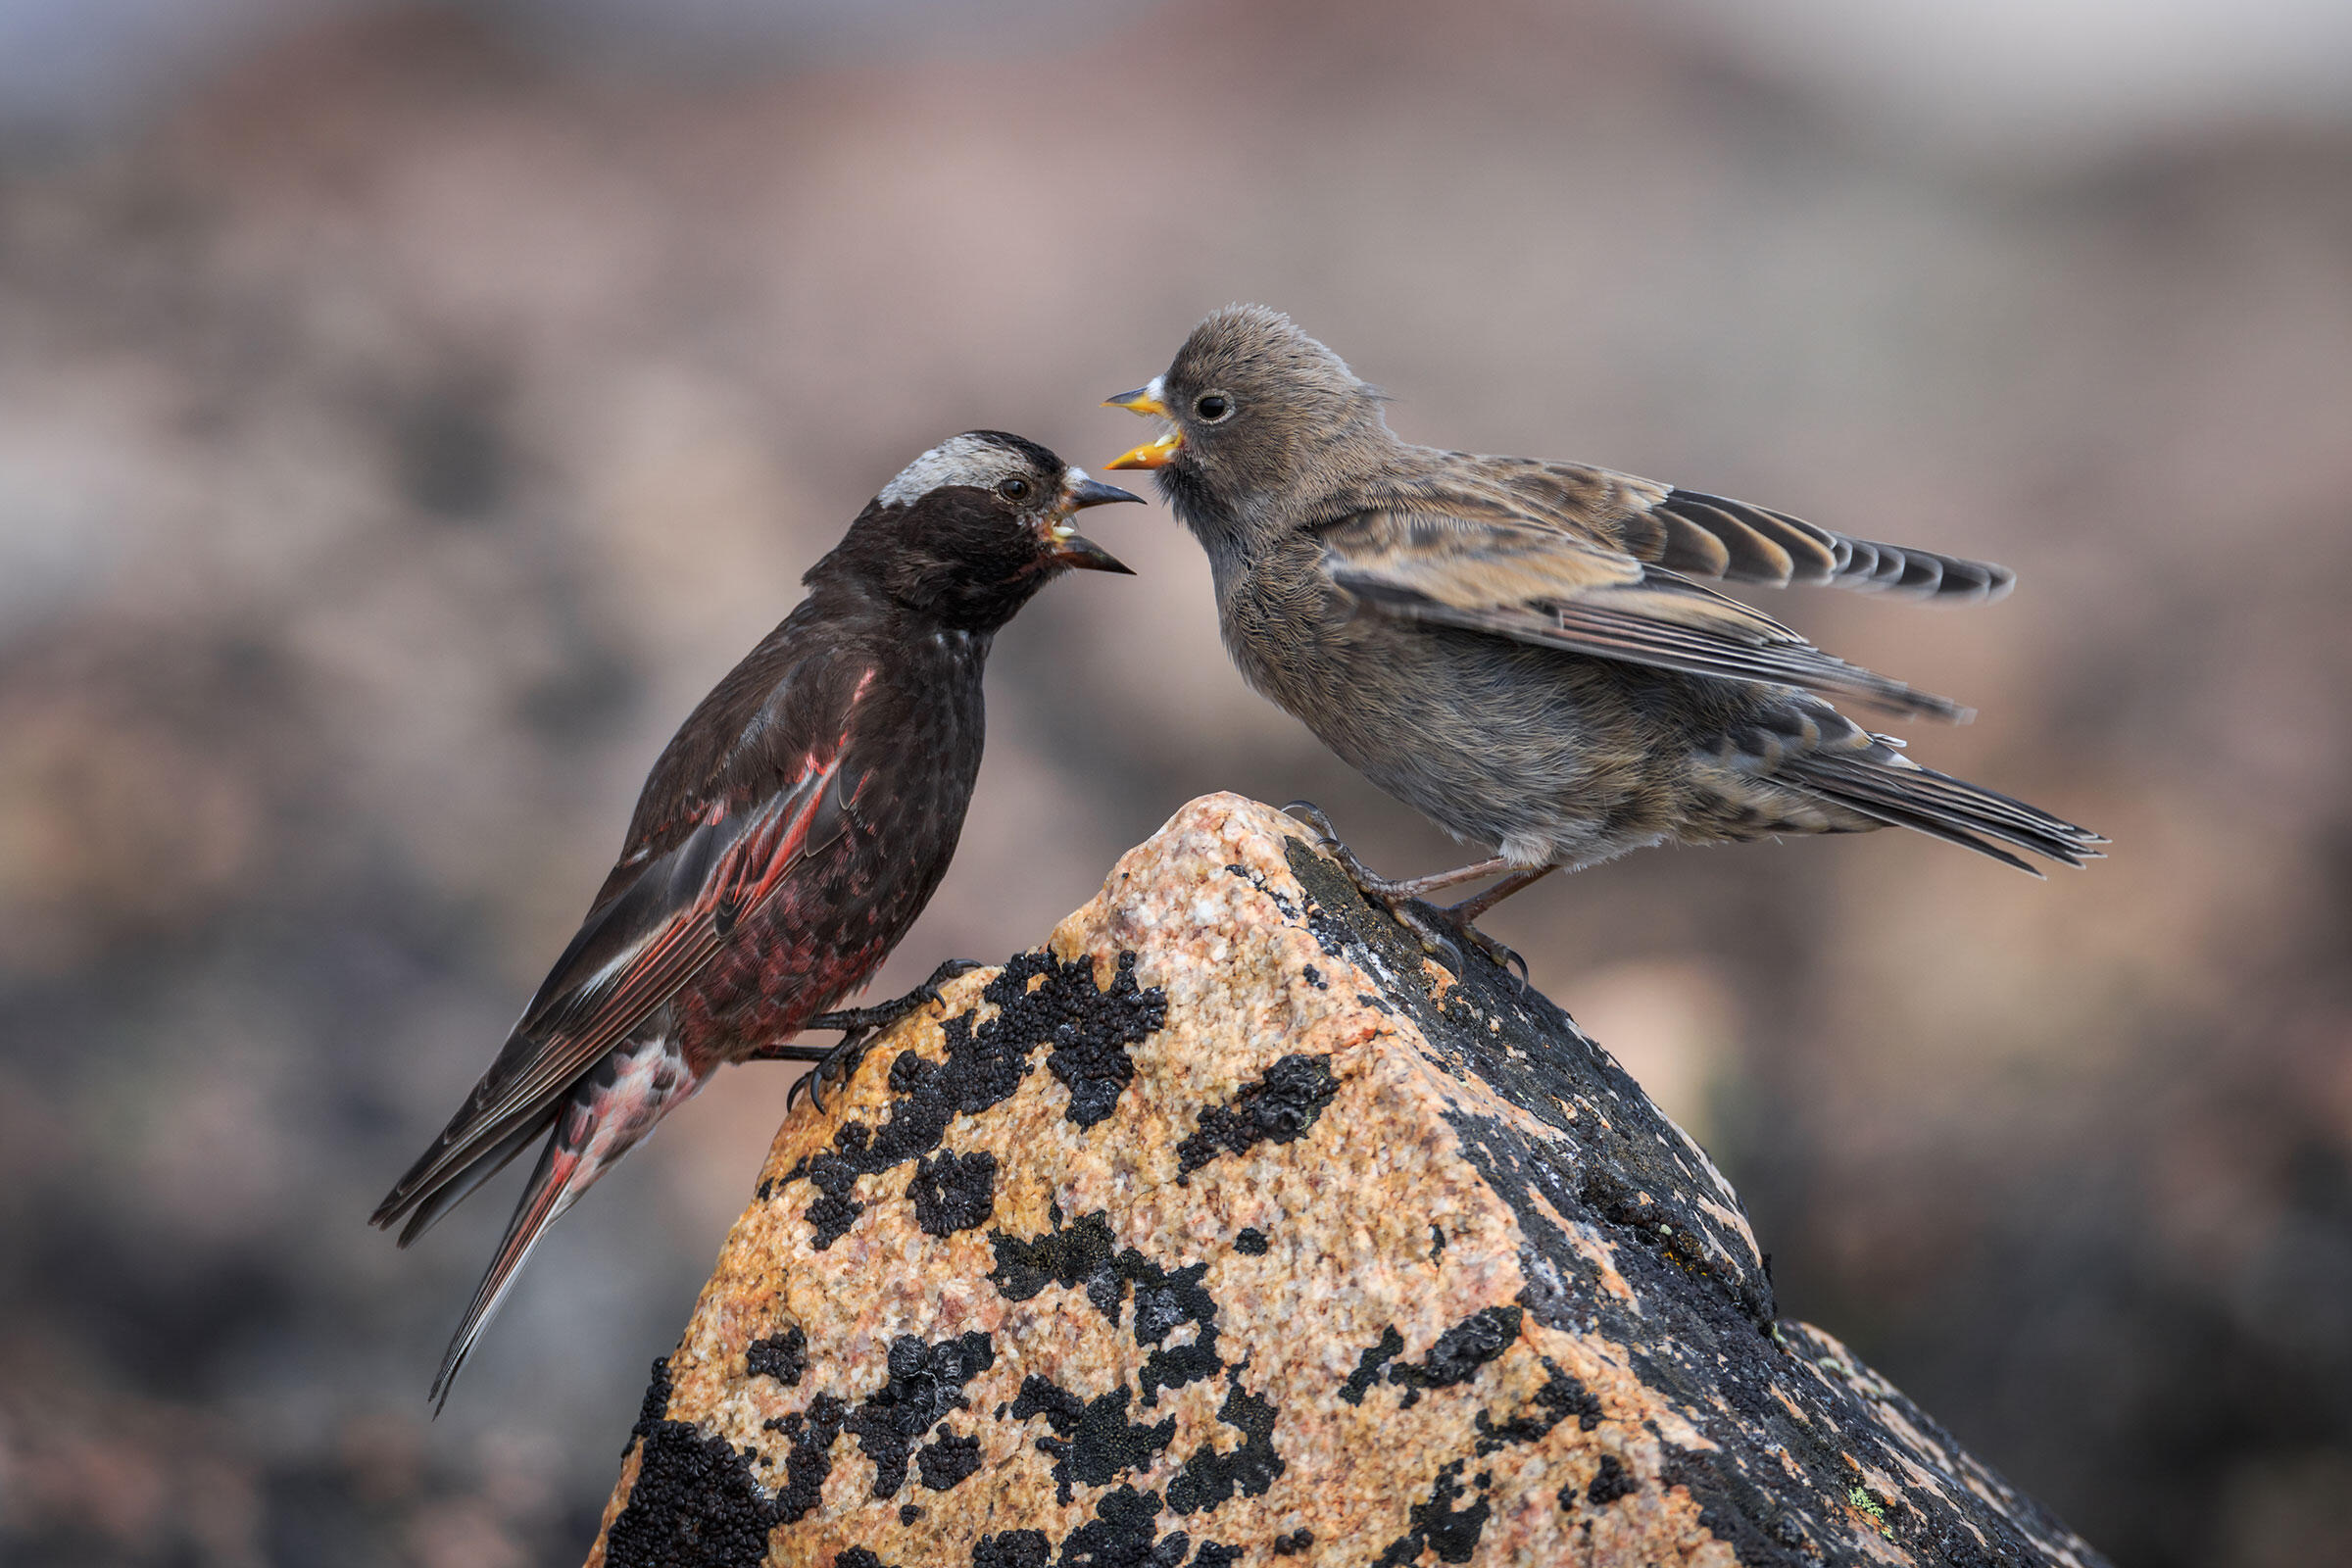 Male Black Rosy-Finch with a fledgling. The species starts nesting as early as April, when the mountain face is still thick with ice and snow. Ronan Donovan